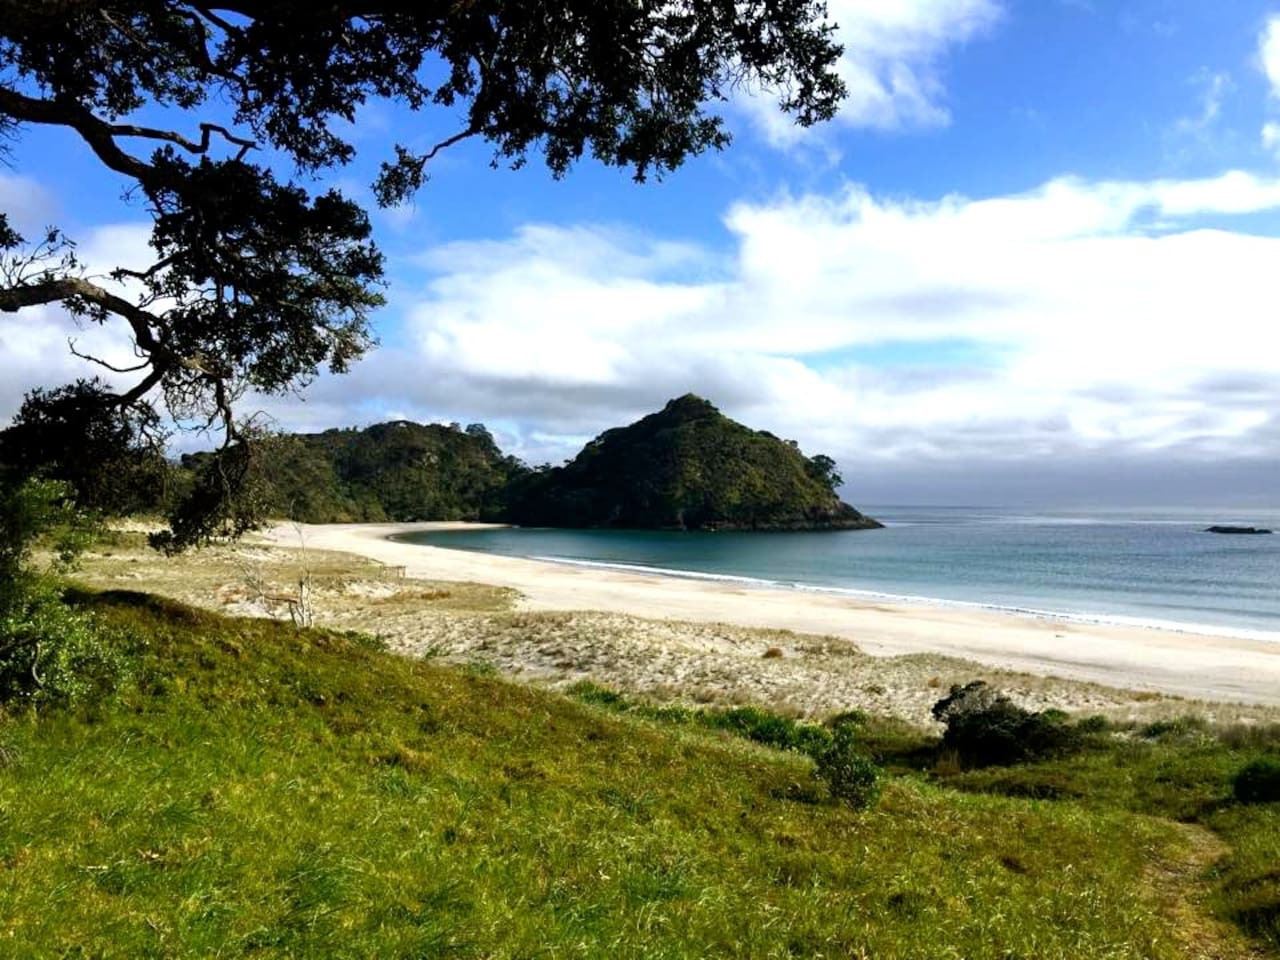 The Fabulous beach which is 2.5km in length great for a morning or evening walk